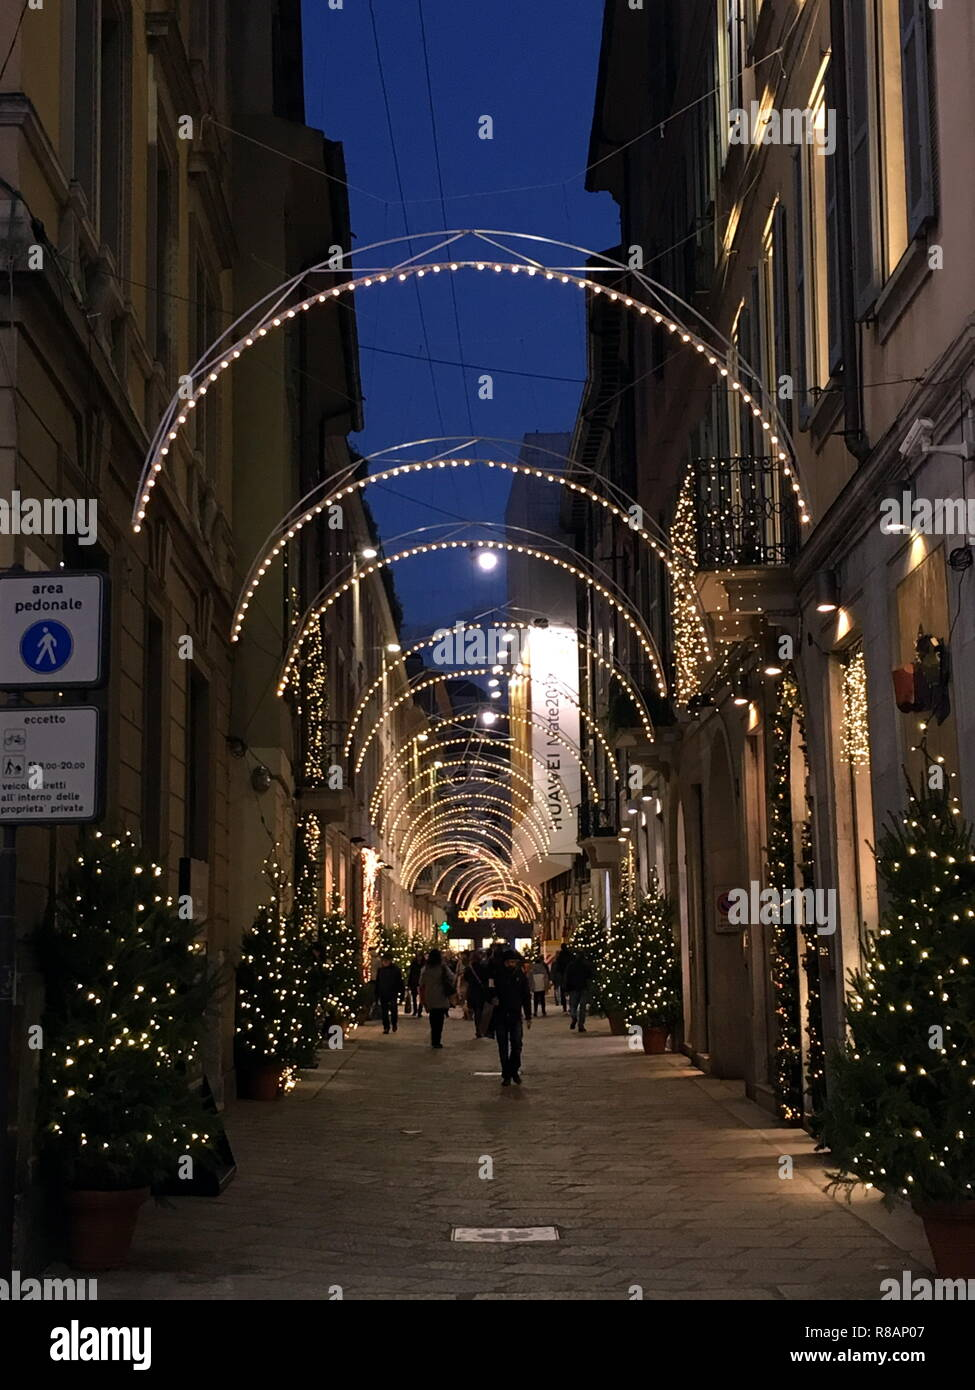 Milan Christmas Lights And Decorations In The Streets Of